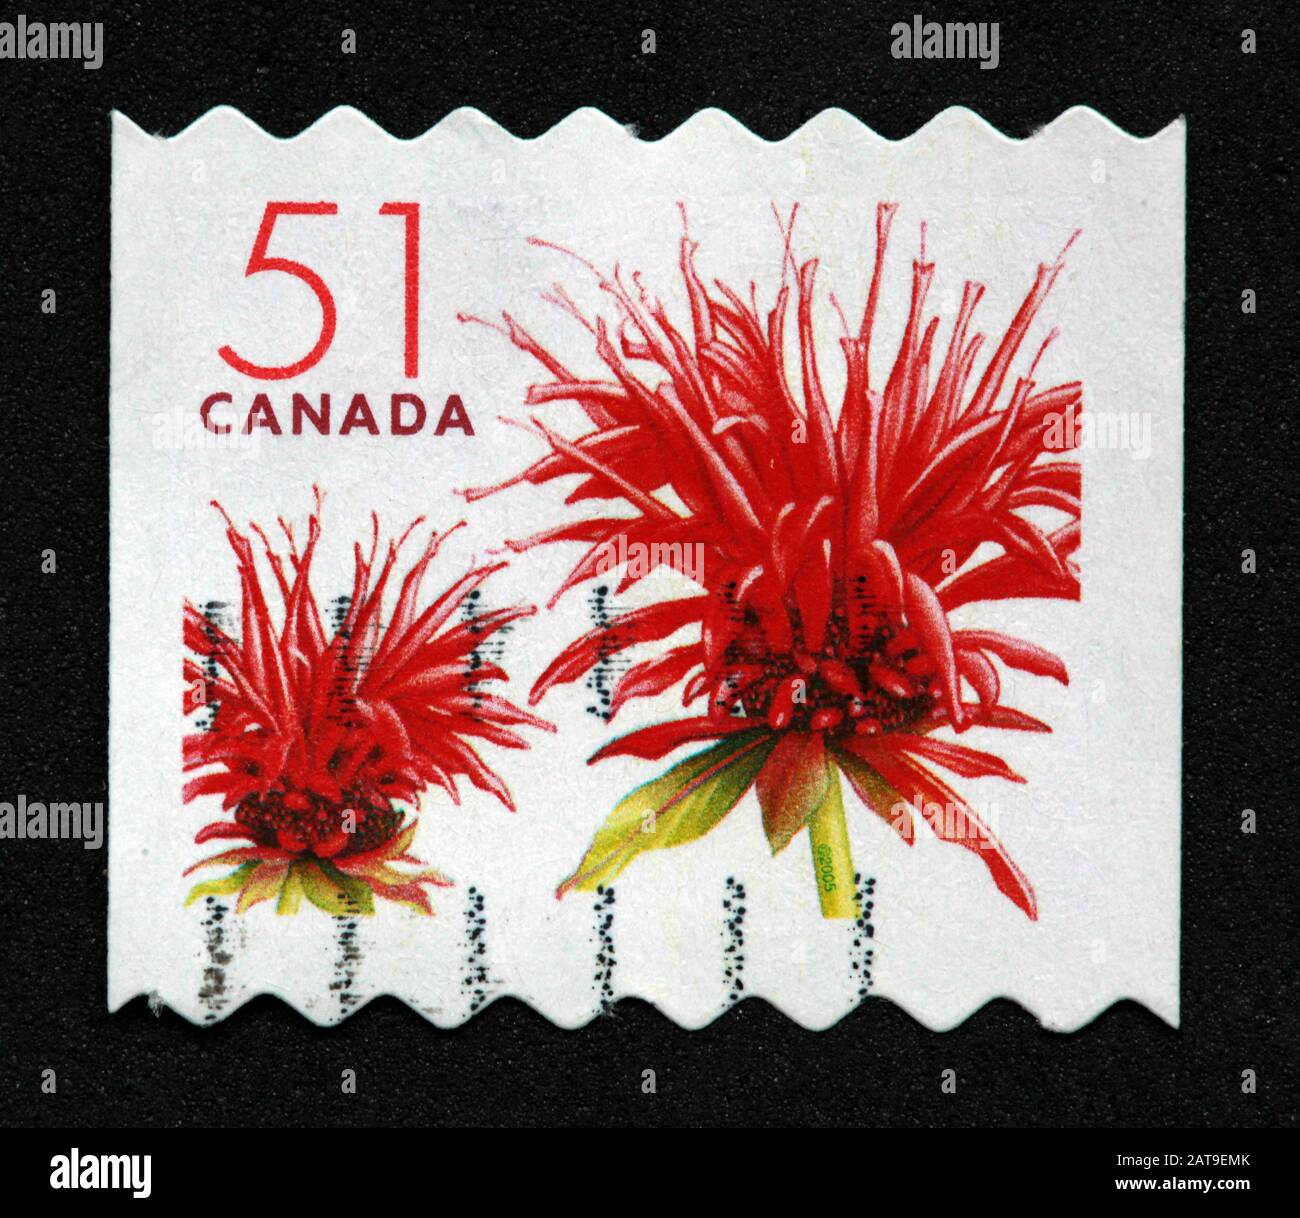 Hotpixuk,@Hotpixuk,GoTonySmith,stamp,postal,franked,frank,used stamps,used franked,used,franked stamp,from envelope,history,historic,old,poste,post office,communications,postage,sending letters,sending,parcels,Canada,51,51cents,red flower,51c,red,flower,Red bergamot,blossom,Canada 51c,Canadian